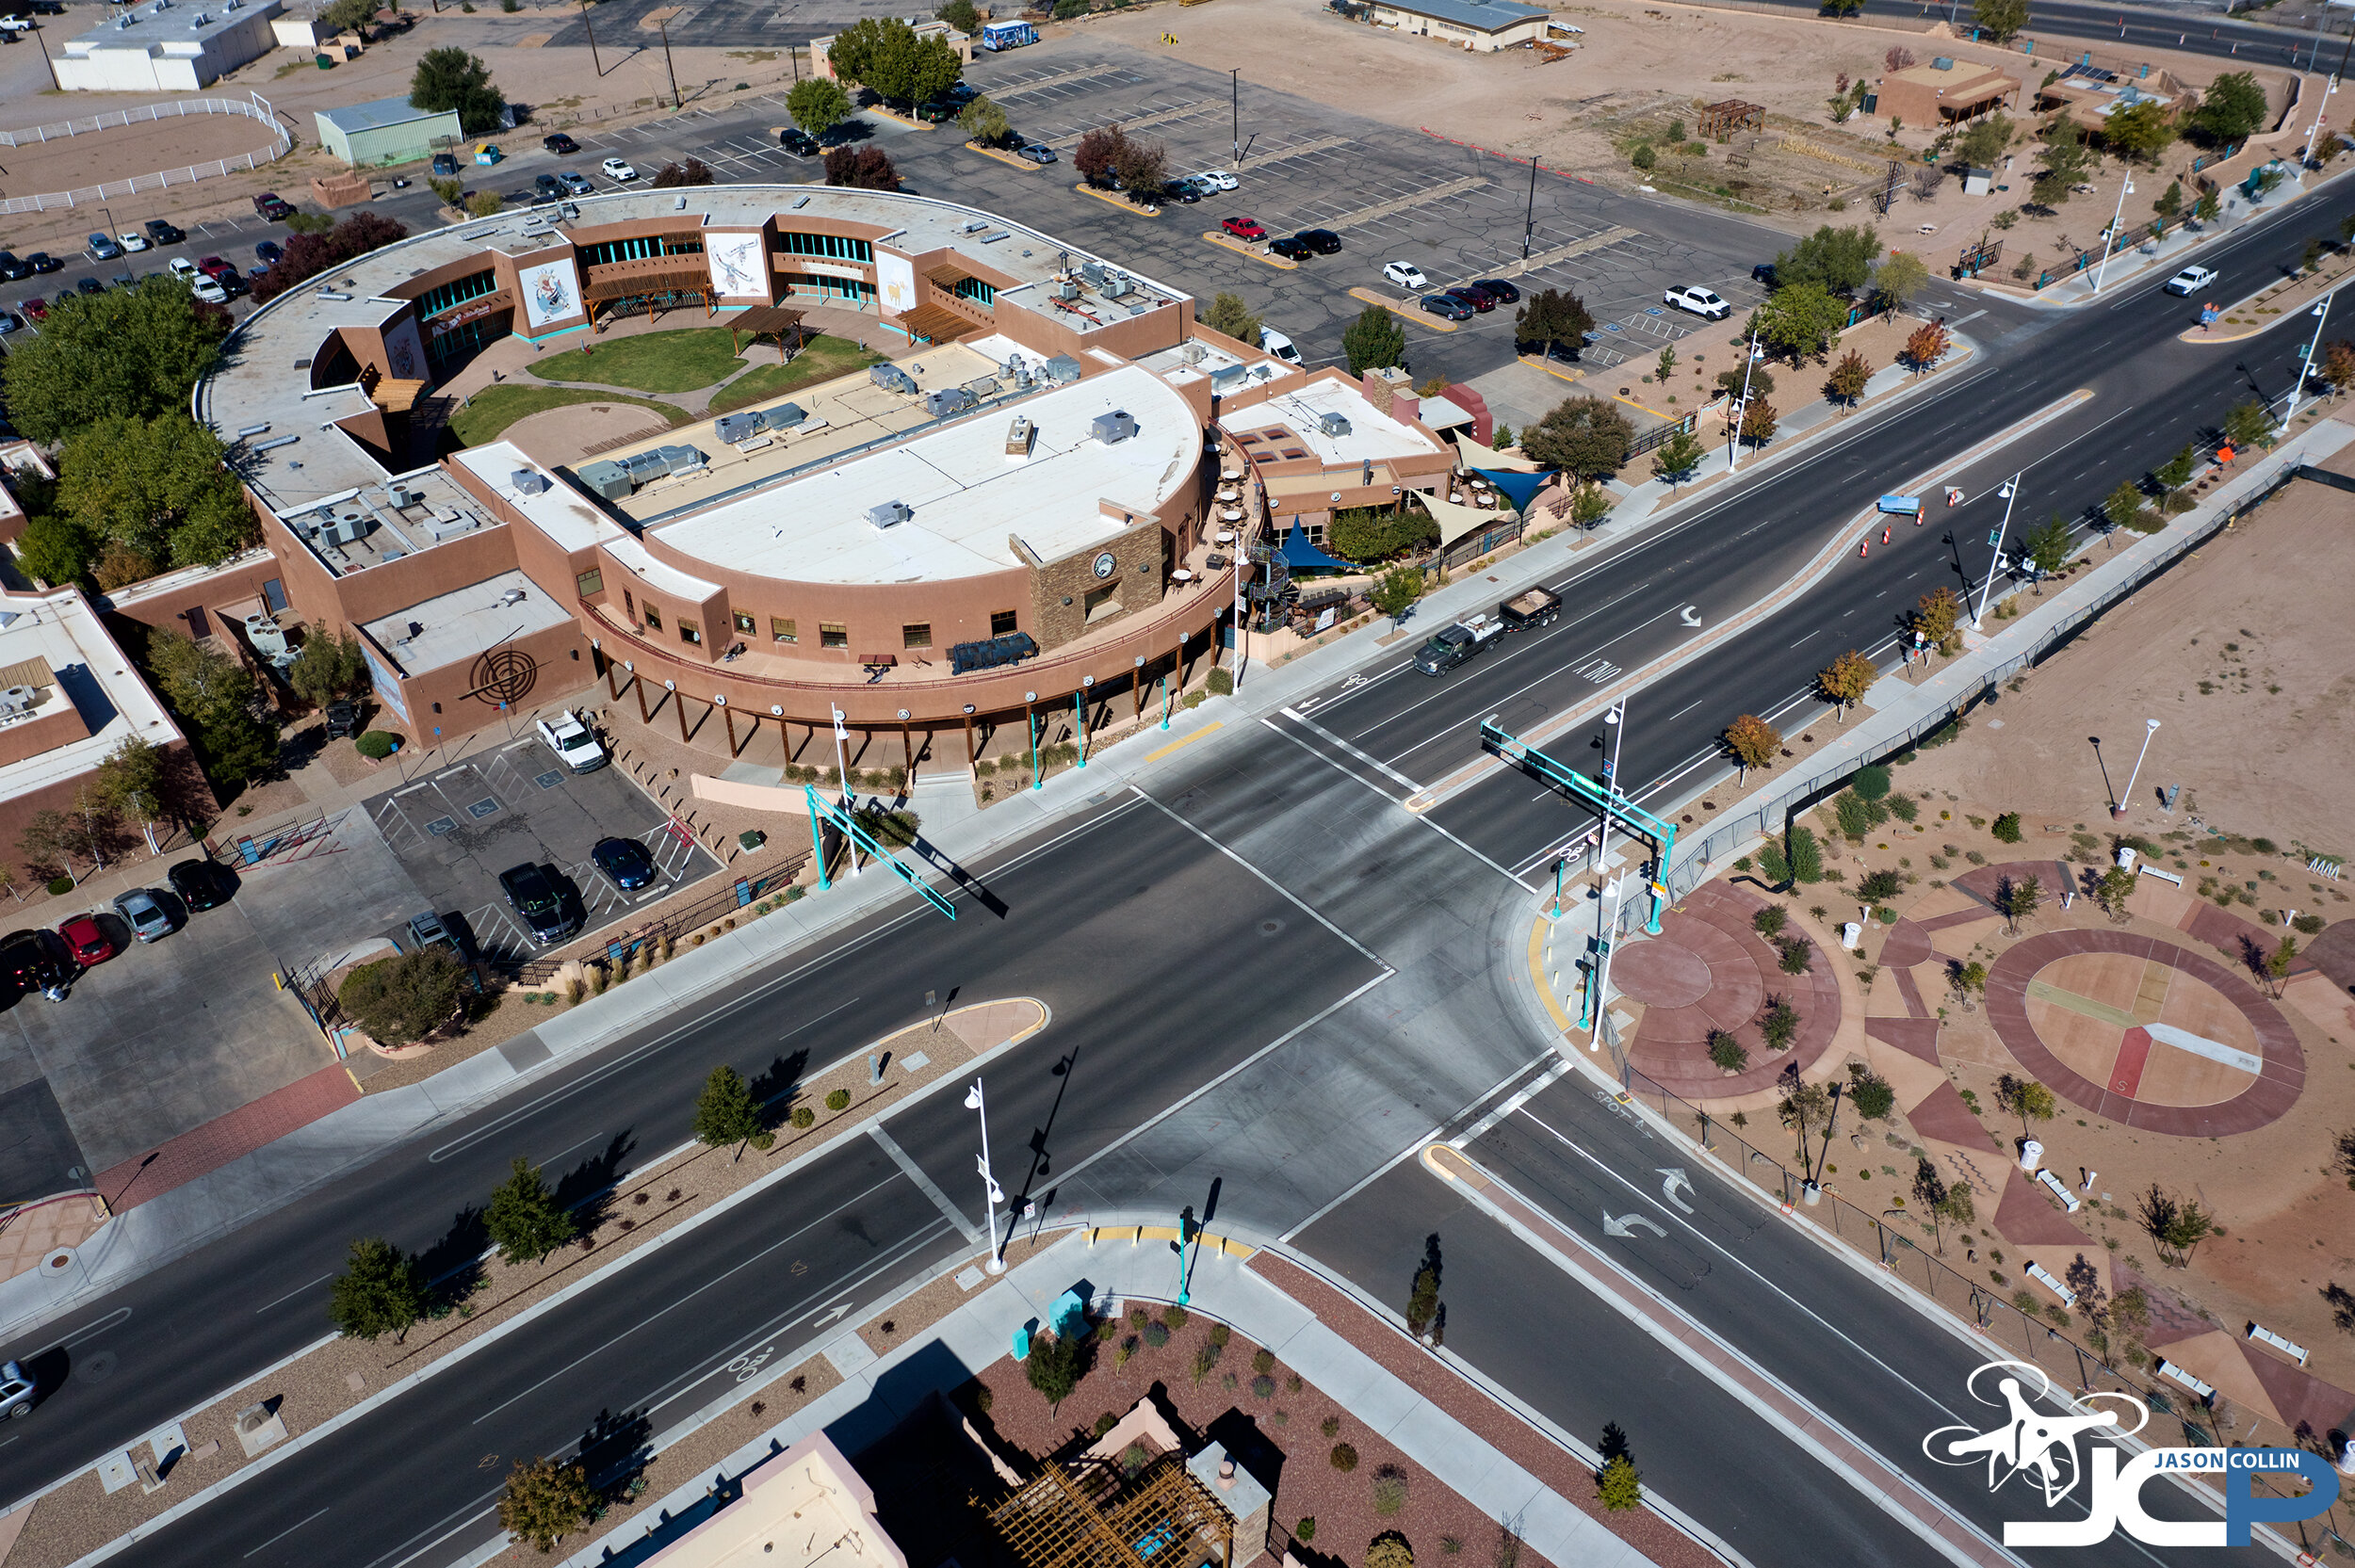 Commercial aerial drone photography for Albuquerque clients